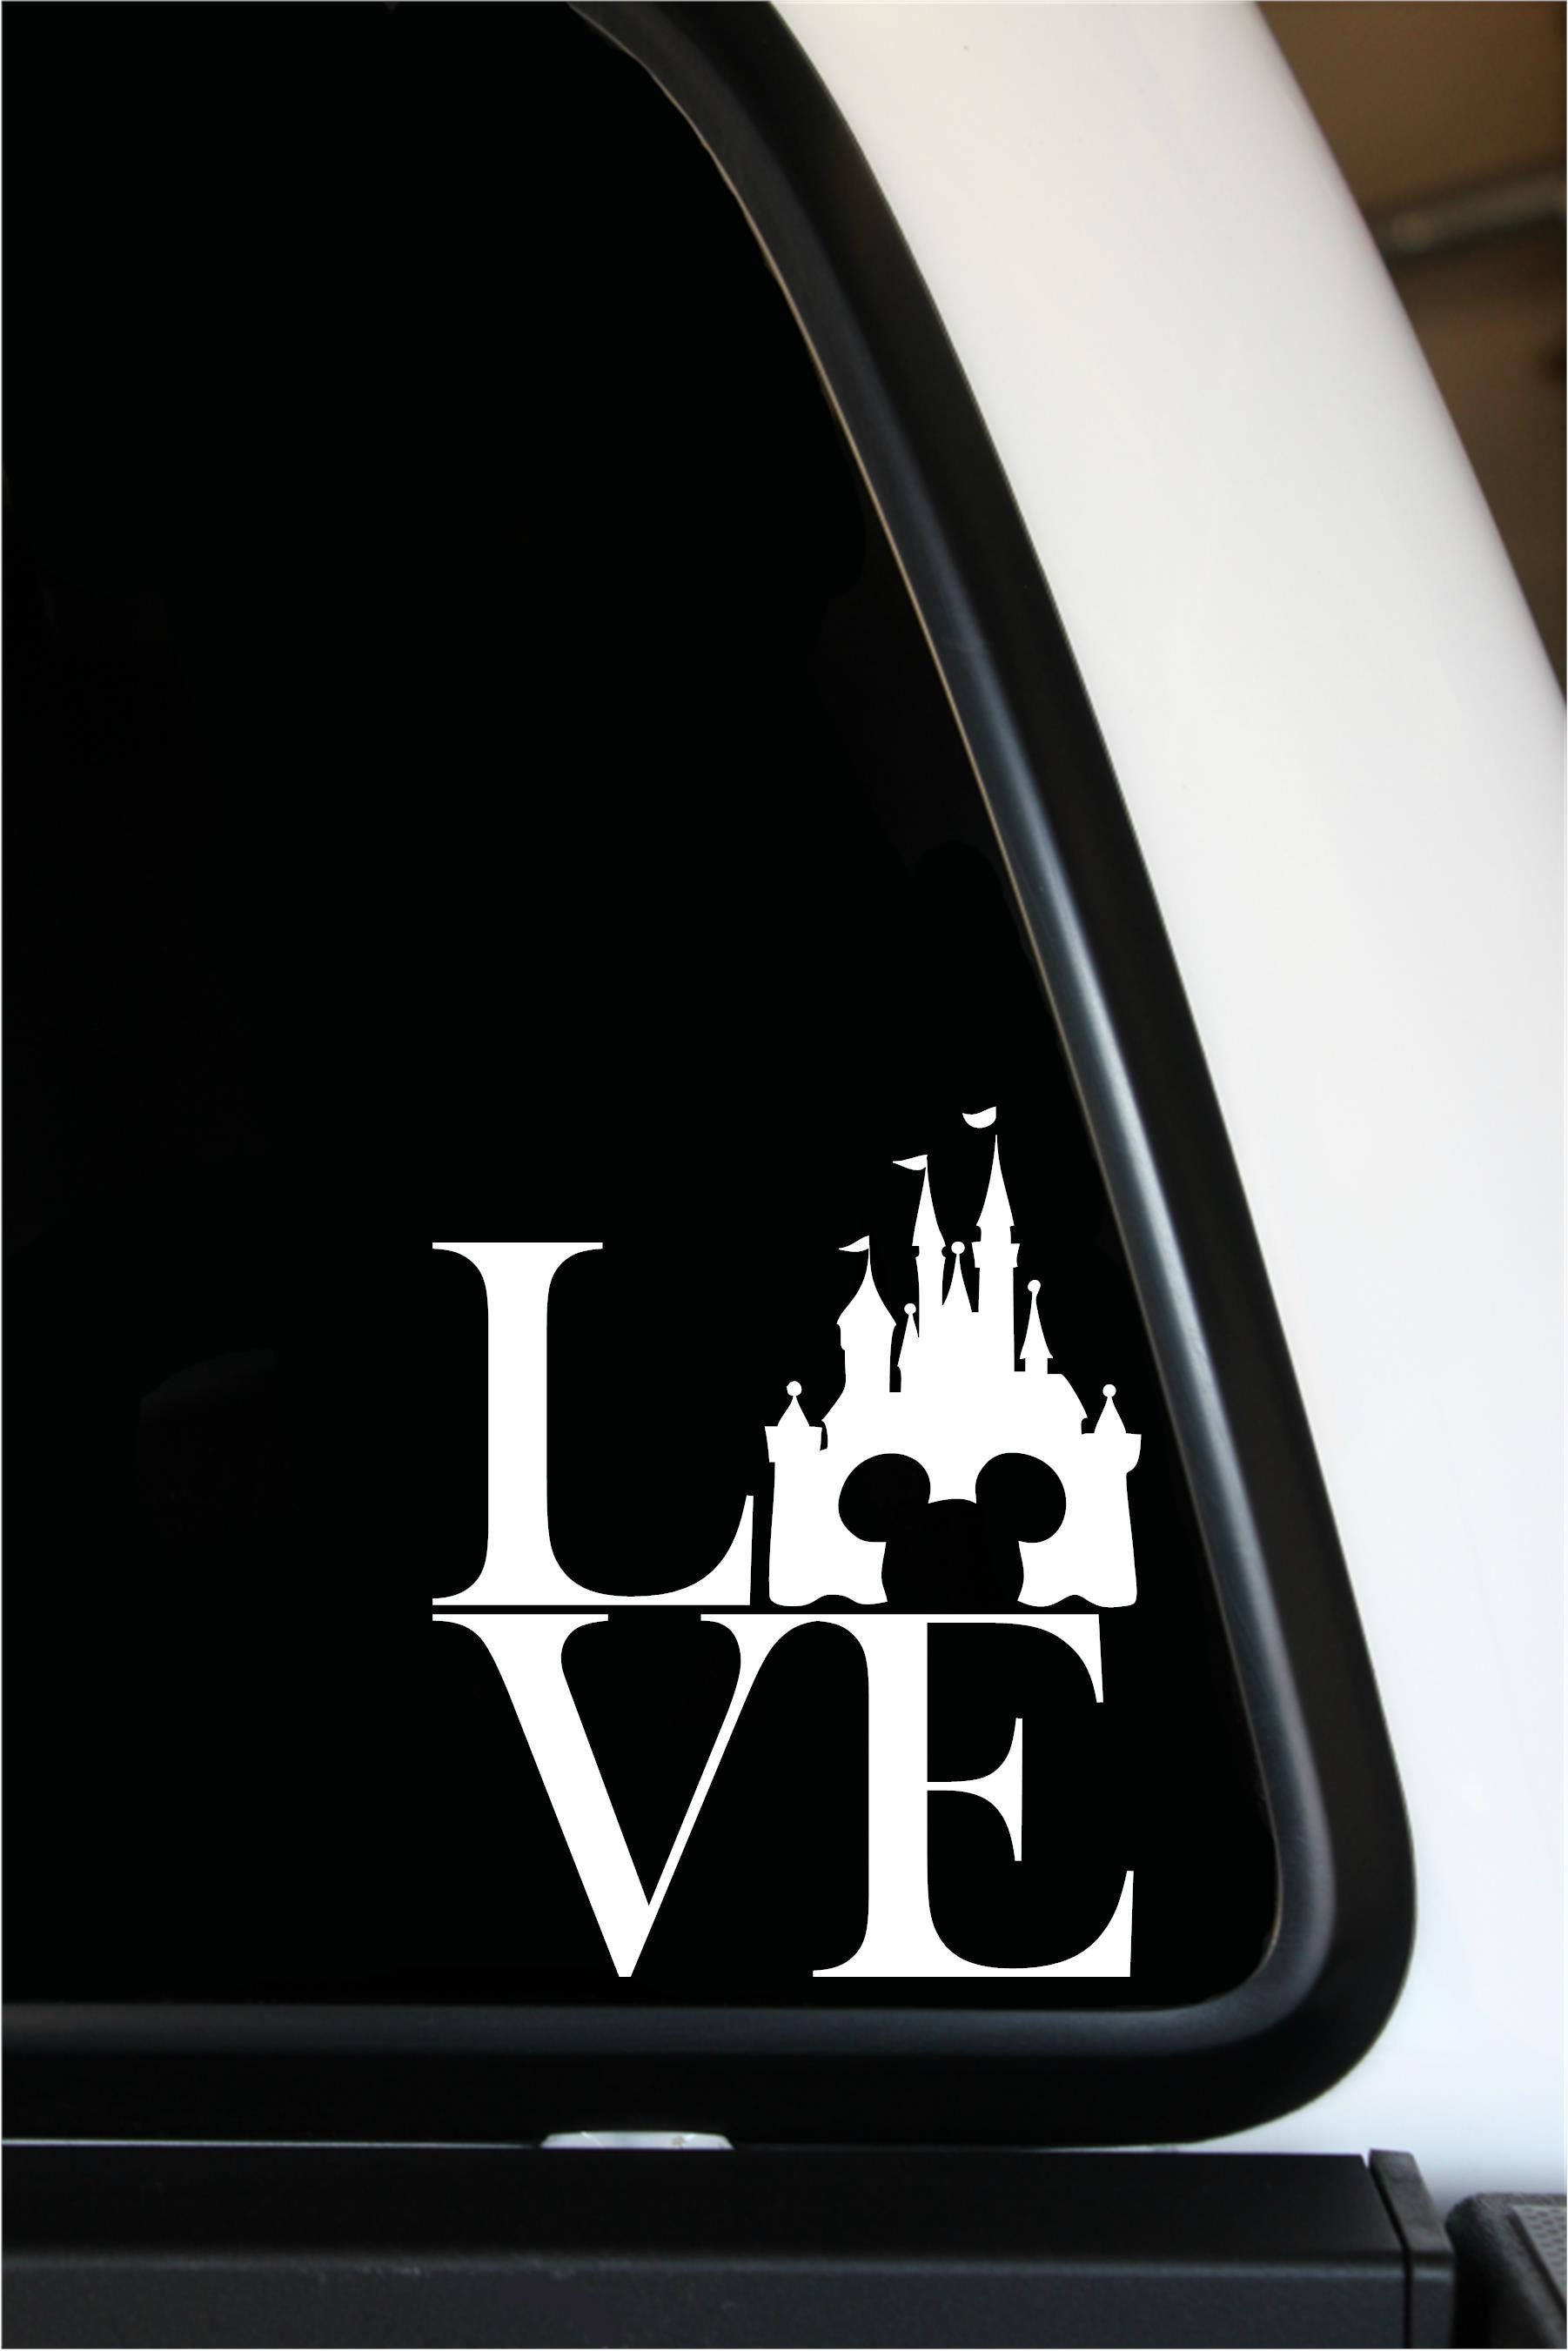 Pin On Decal Shop